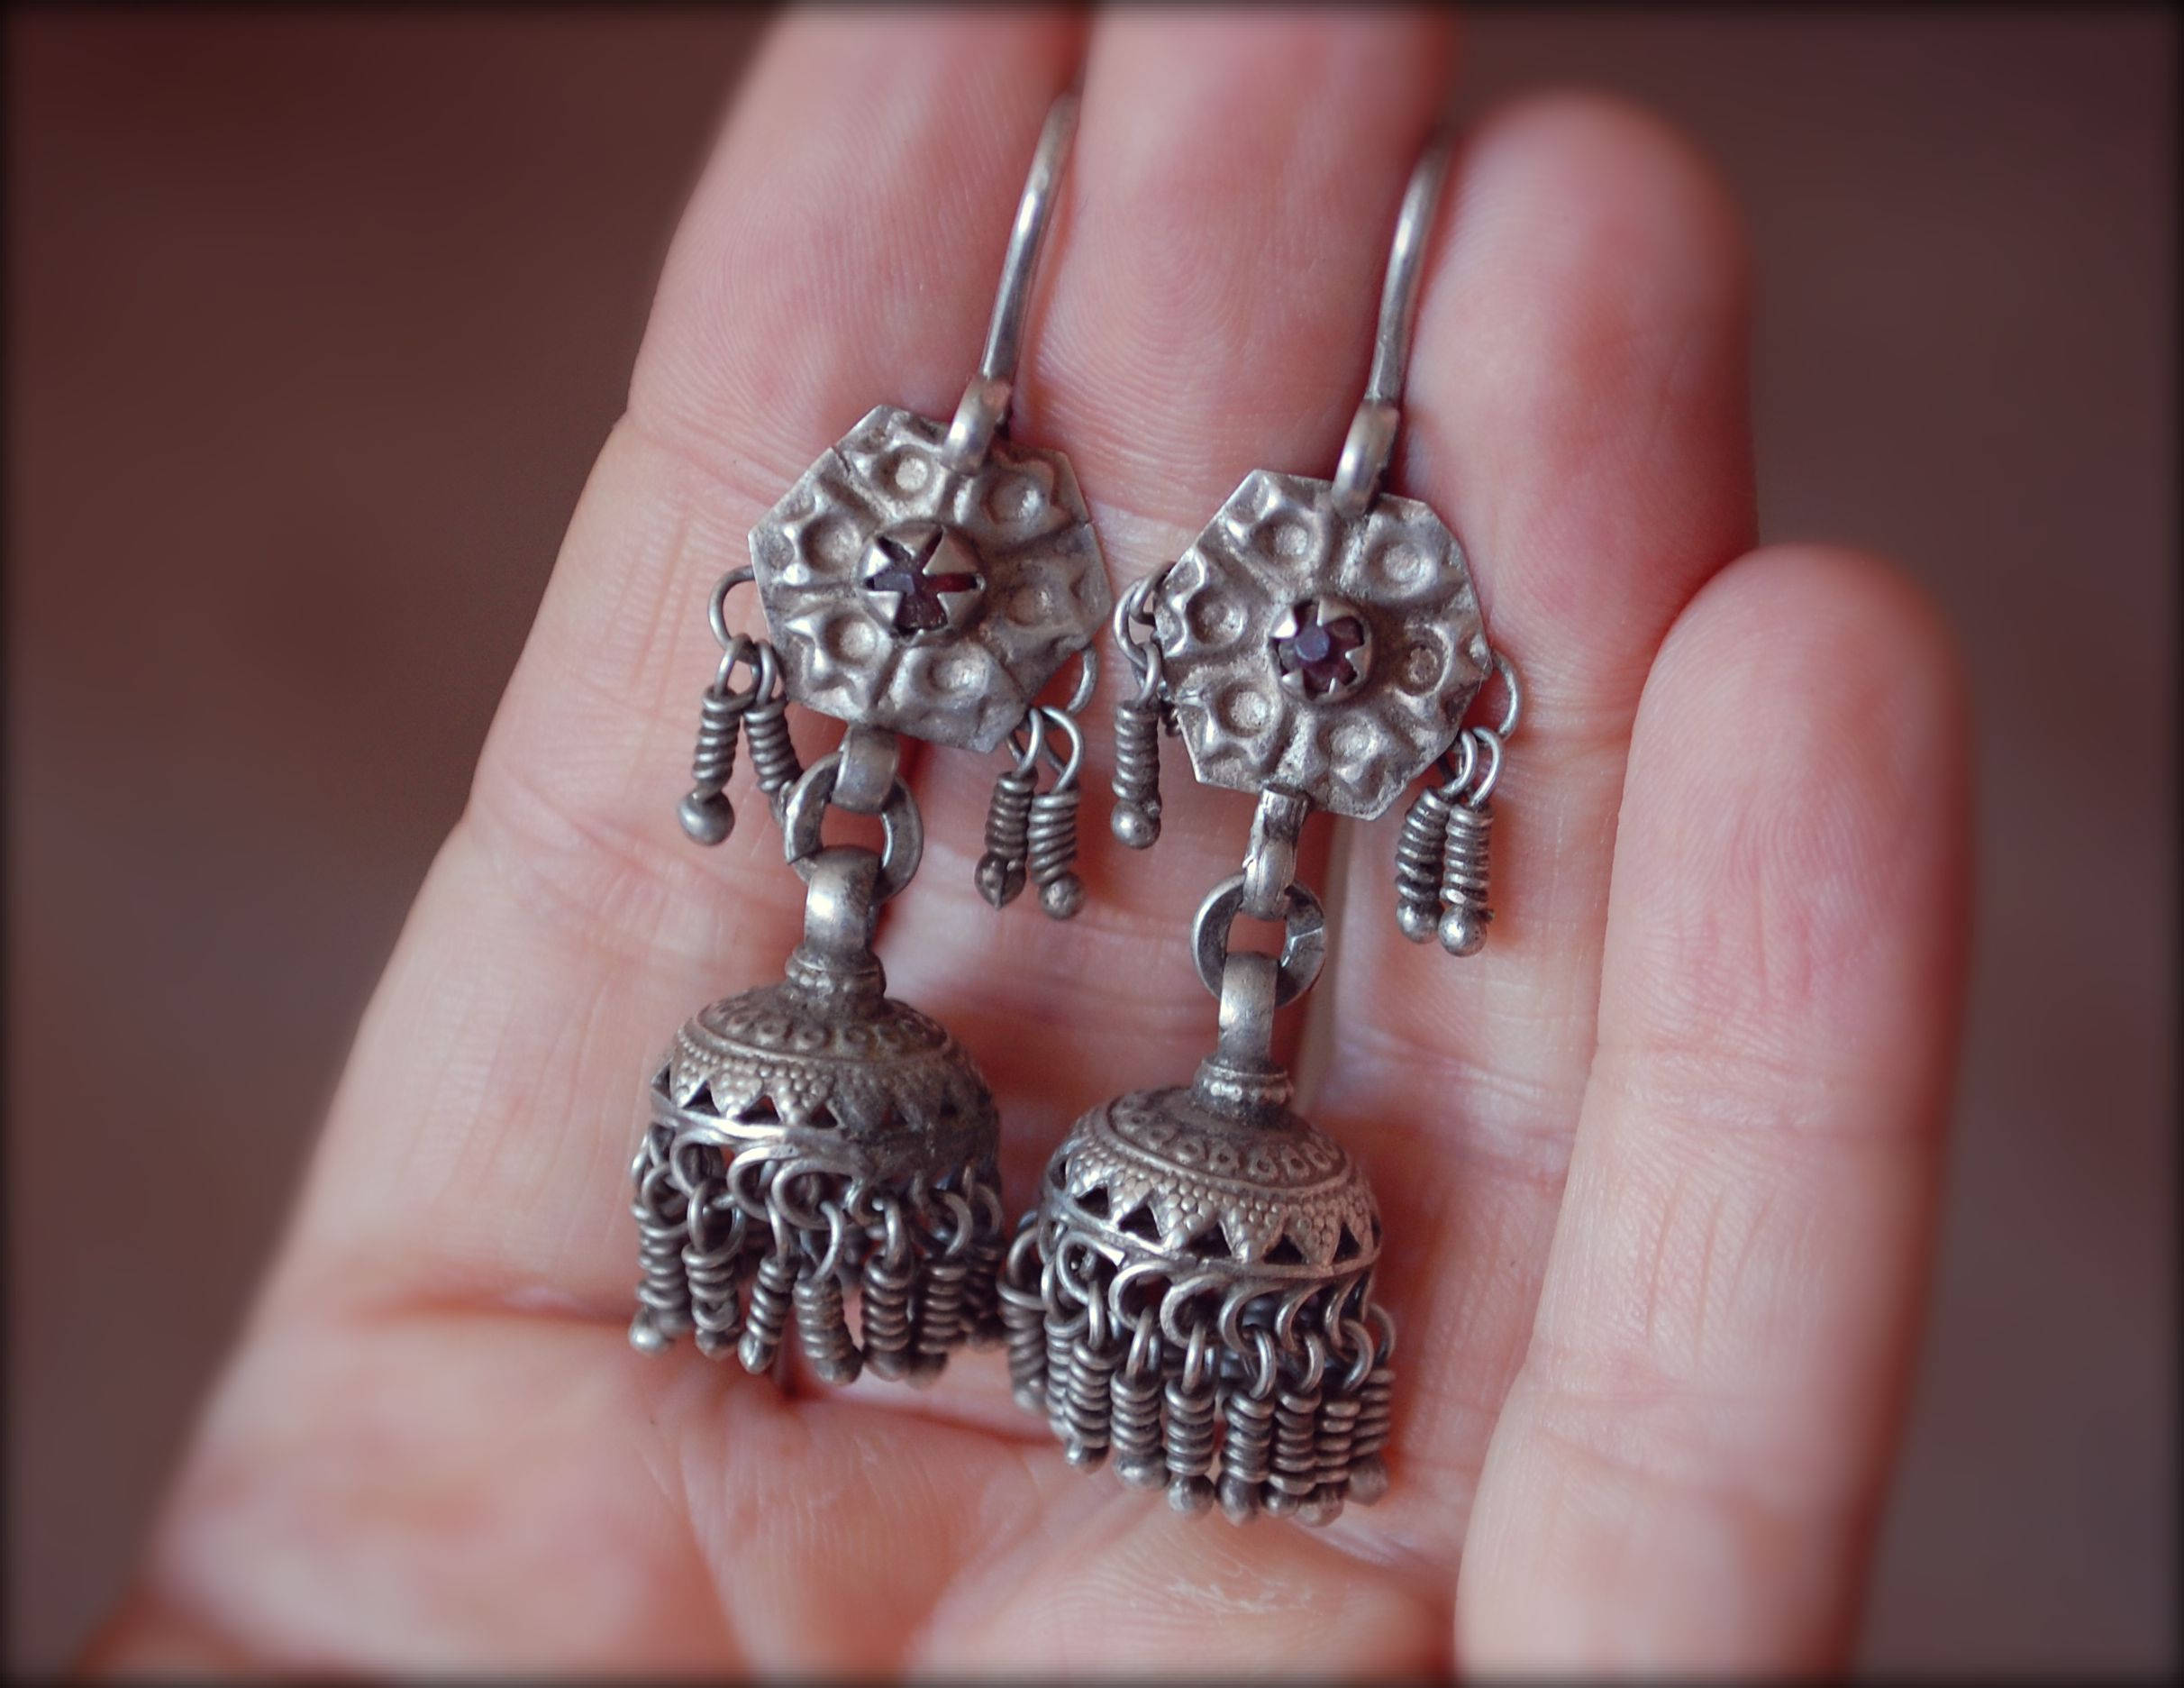 Tribal Kashmiri Jhumka Earrings with Red Glass - Tribal Silver Earrings - Tribal Afghan Earrings - Jhumka Earrings - Ethnic Tribal Earrings